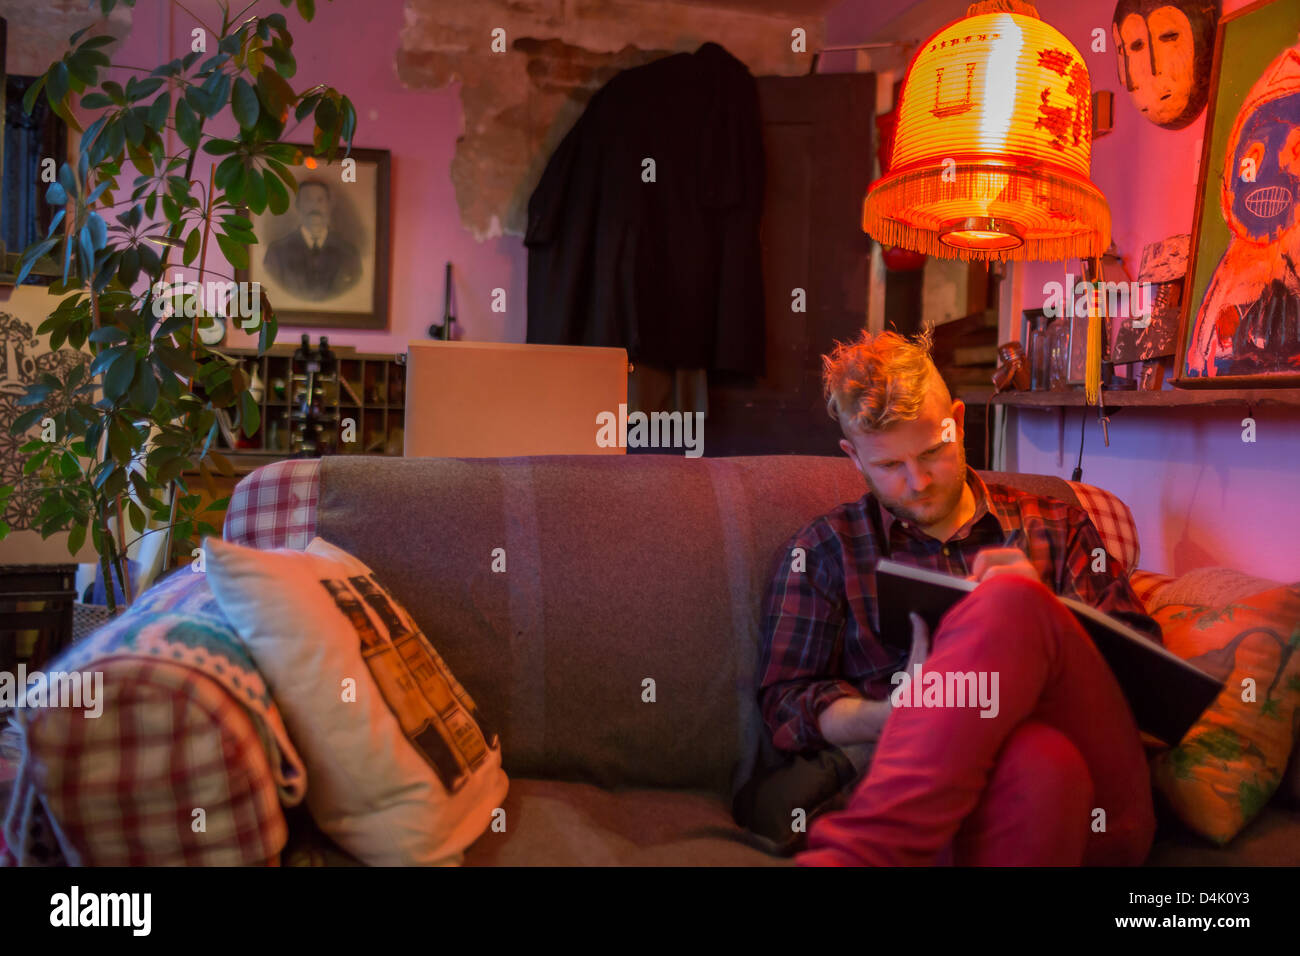 Man sketching under orange lamp - Stock Image